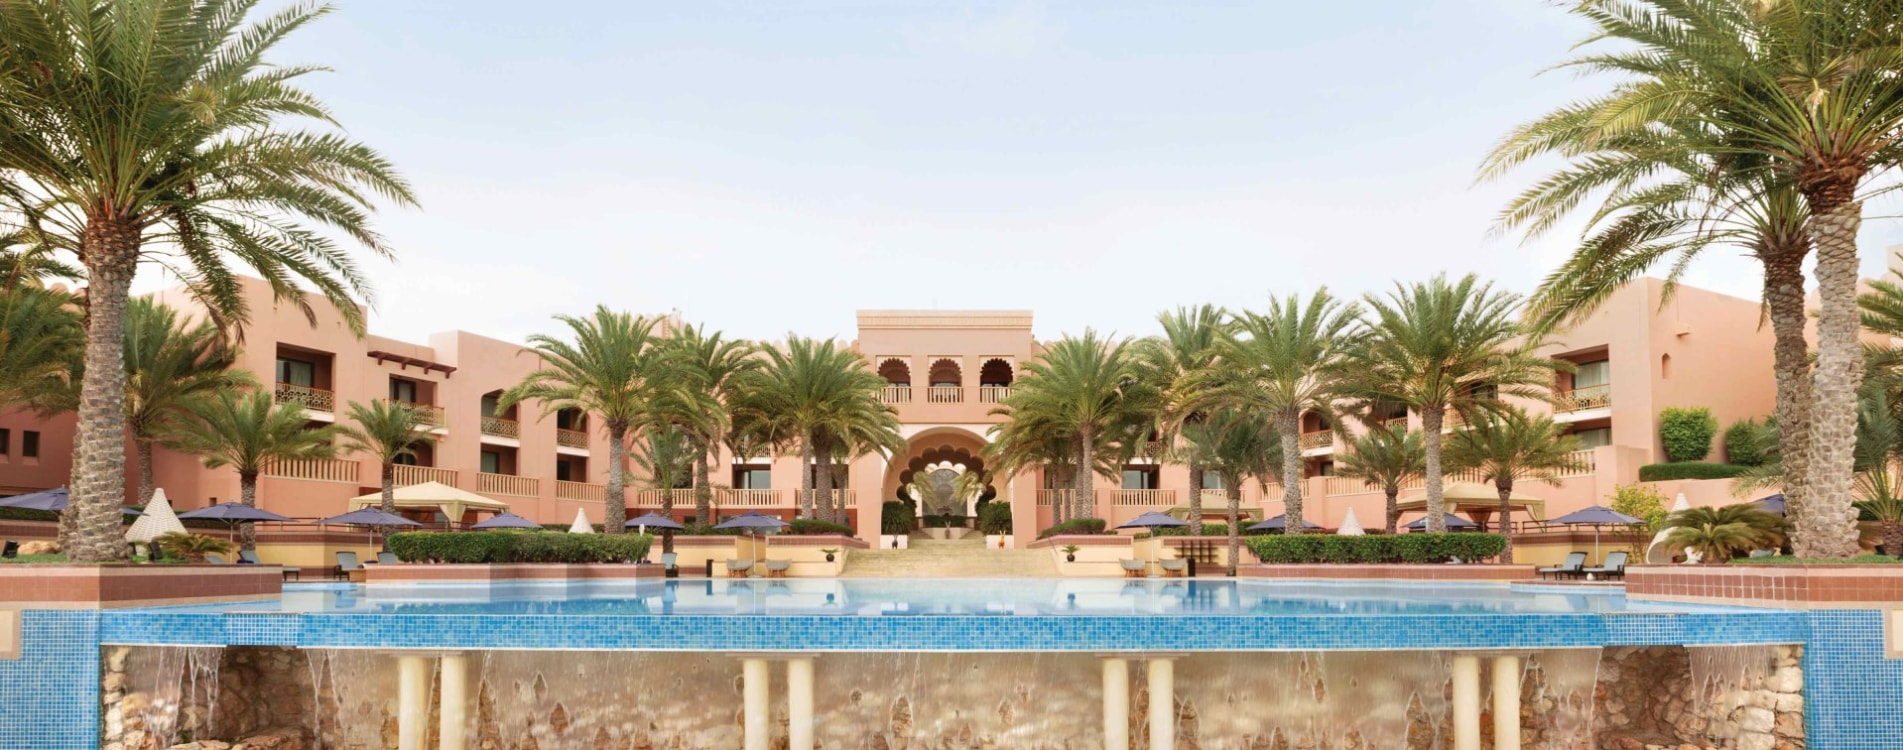 Shangri-La-Al-Husn-Resort-and-Spa-Pool-Exterior-Fassade-Oman.jpg